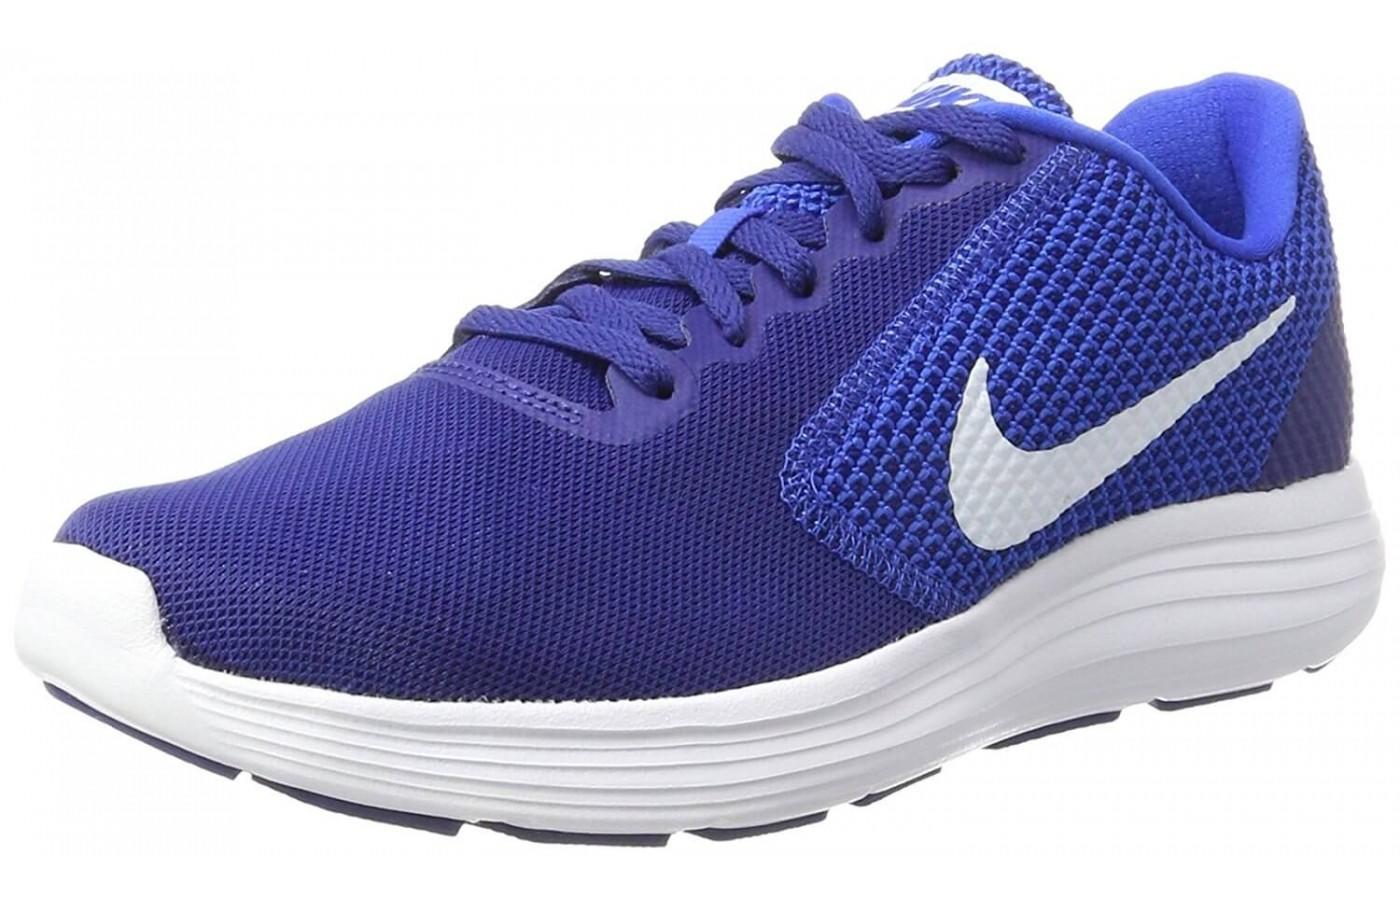 33af37155a71 The Nike Revolution 3 features Phylon midsole cushioning ...